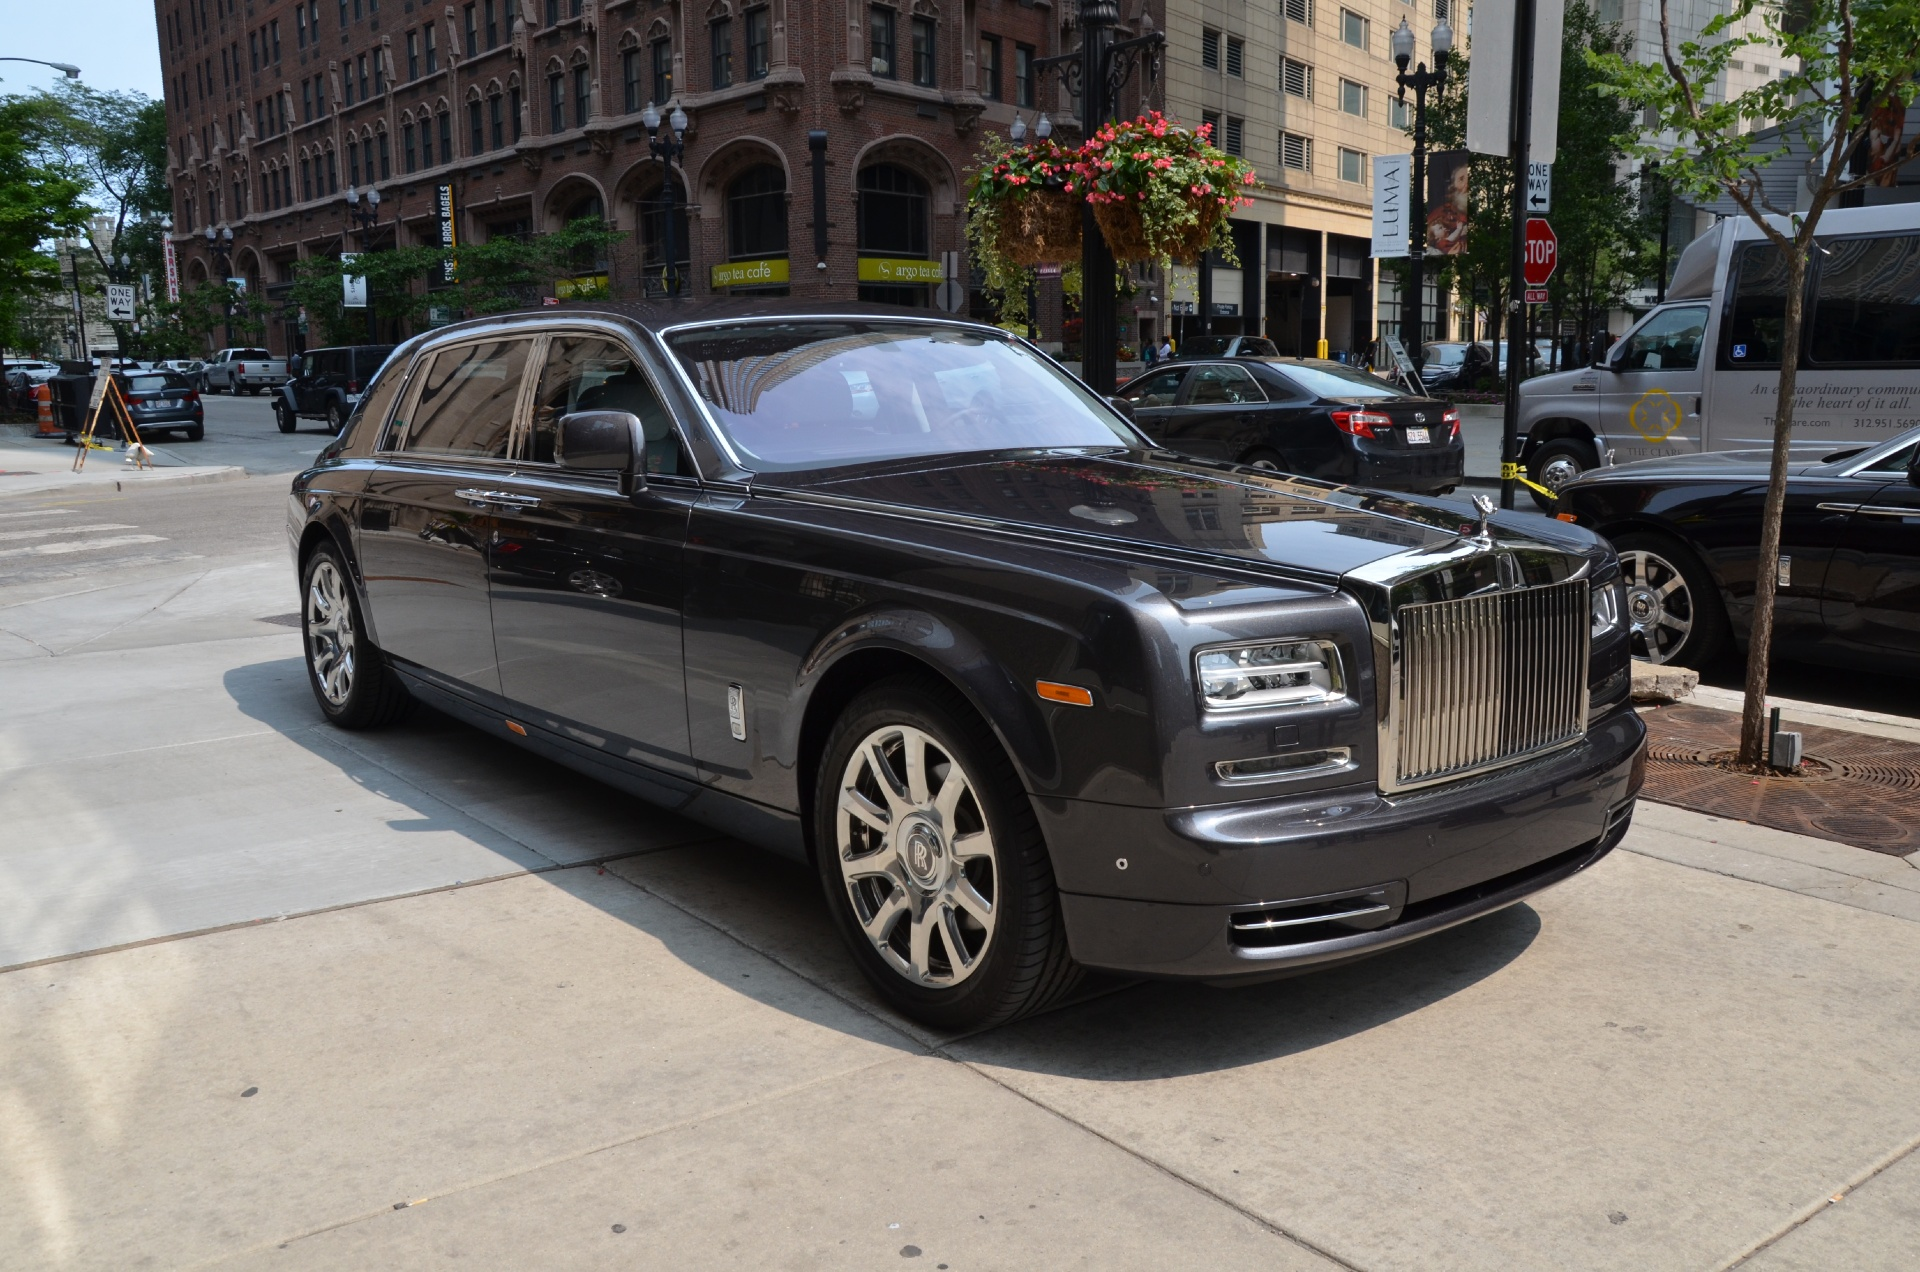 2014 rolls royce phantom extended wheelbase ewb stock r215 s for sale near chicago il il. Black Bedroom Furniture Sets. Home Design Ideas